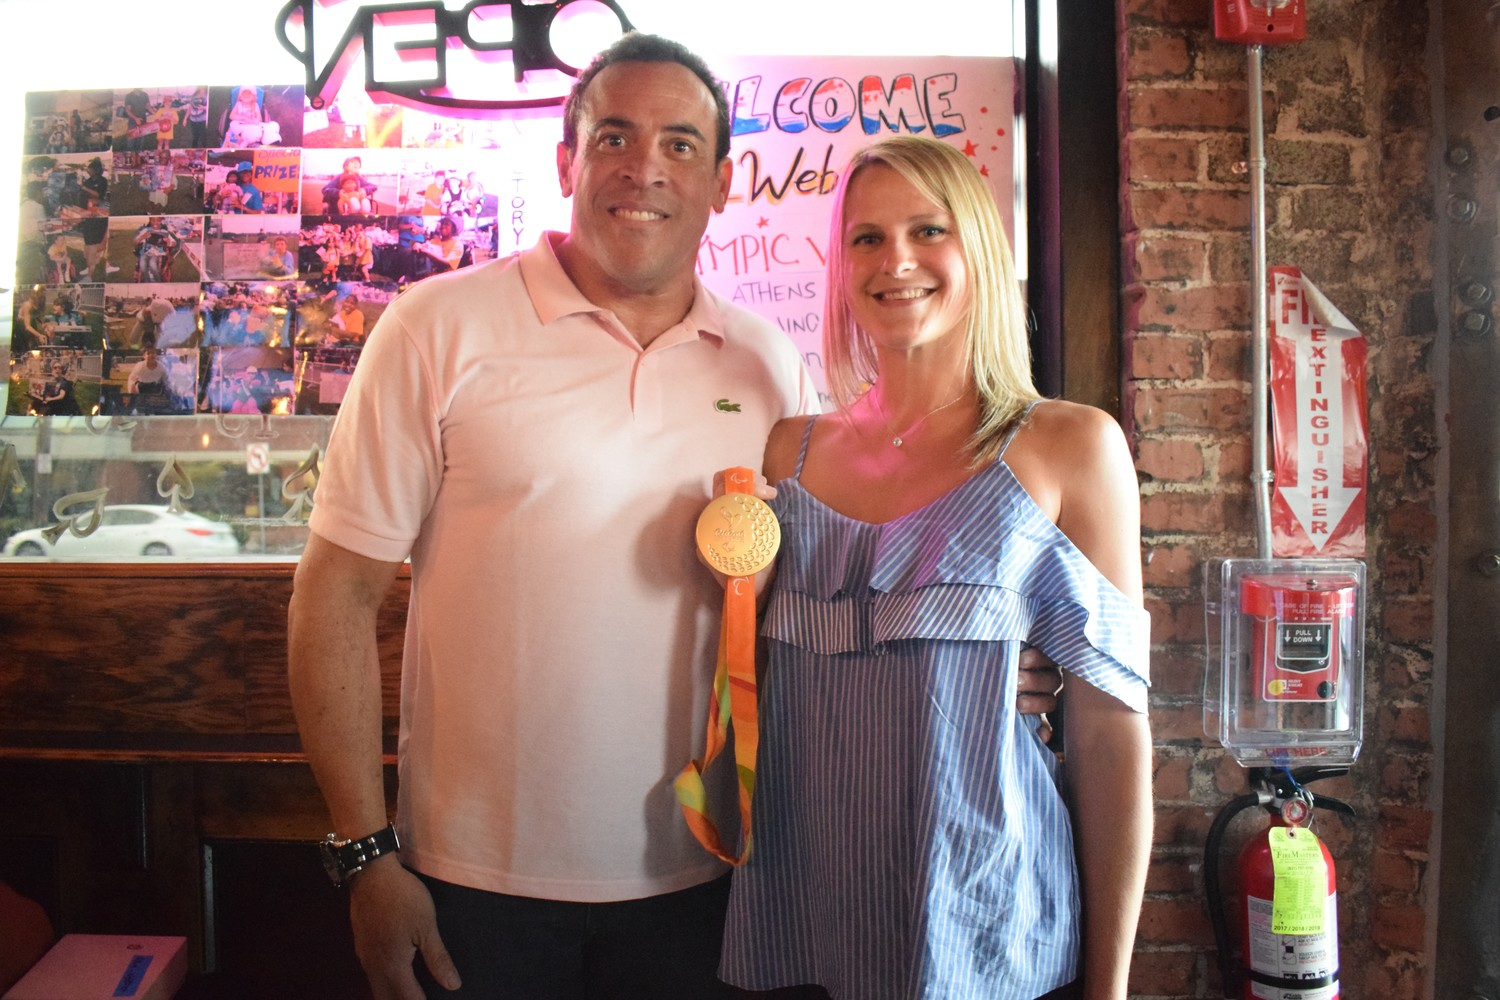 U.S. Paralympian Lora Webster showed off her gold medal to Franklin Square's Lucky Bar 13 owner Gregory Cajuste.